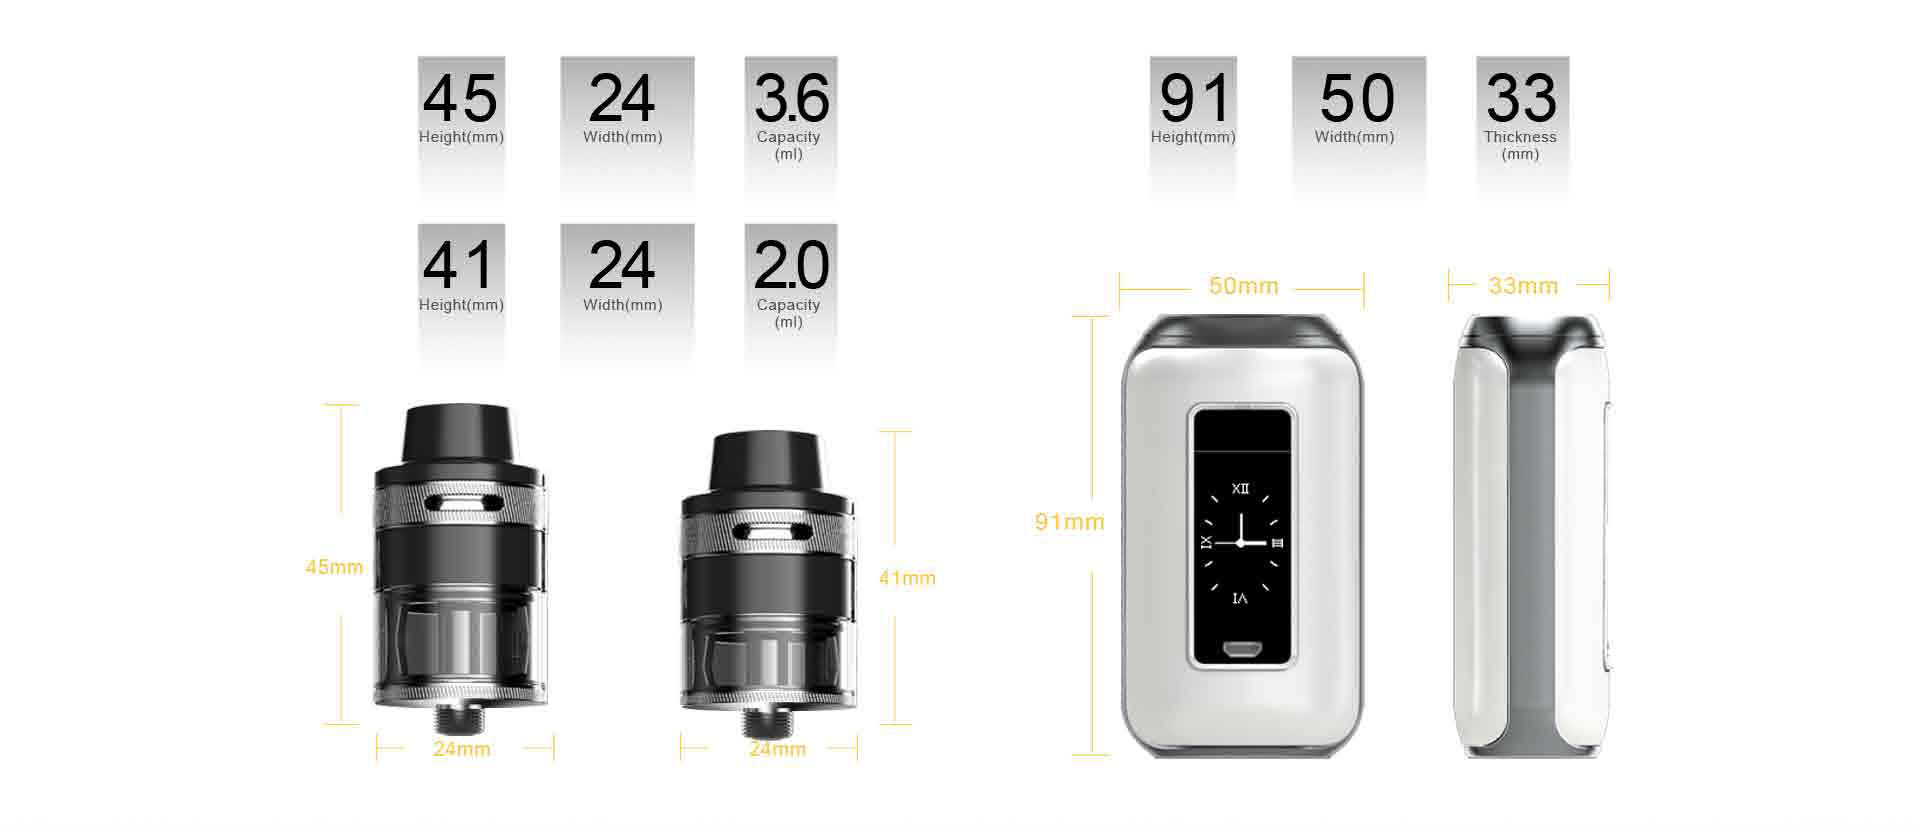 Aspire SkyStar Revvo Kit Dimensions and Specifications